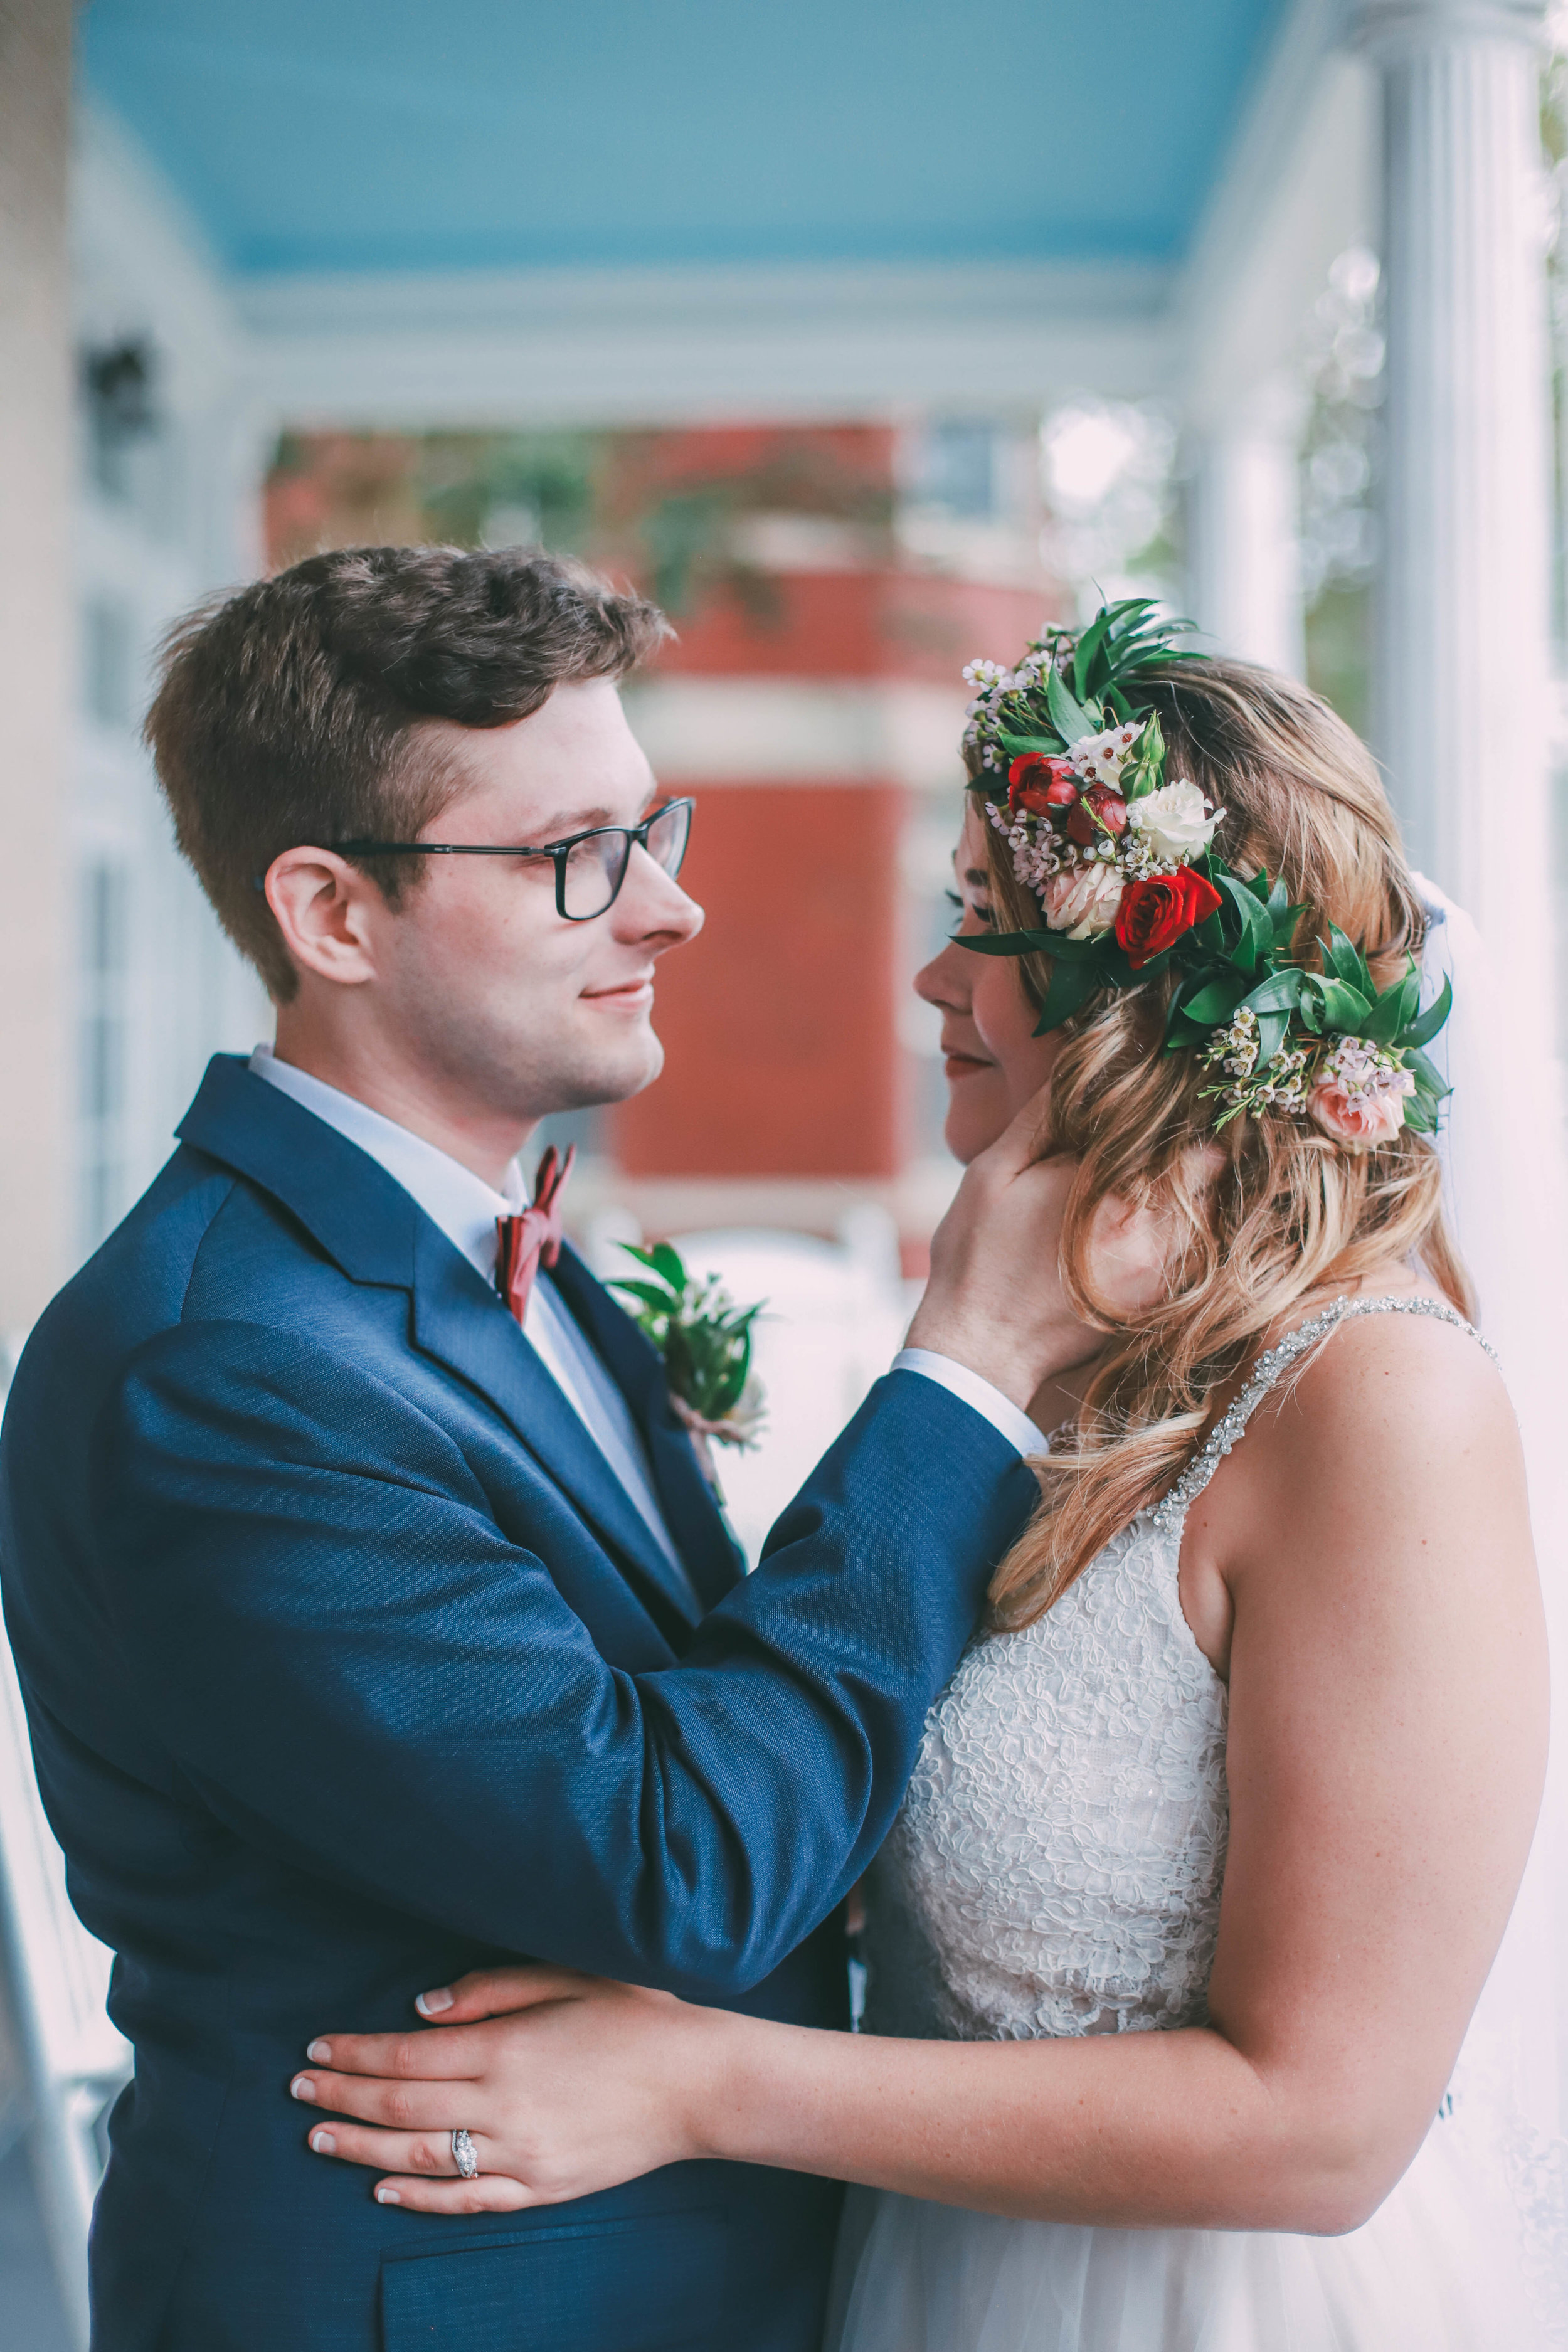 Bridgette+Jacob-320.jpg